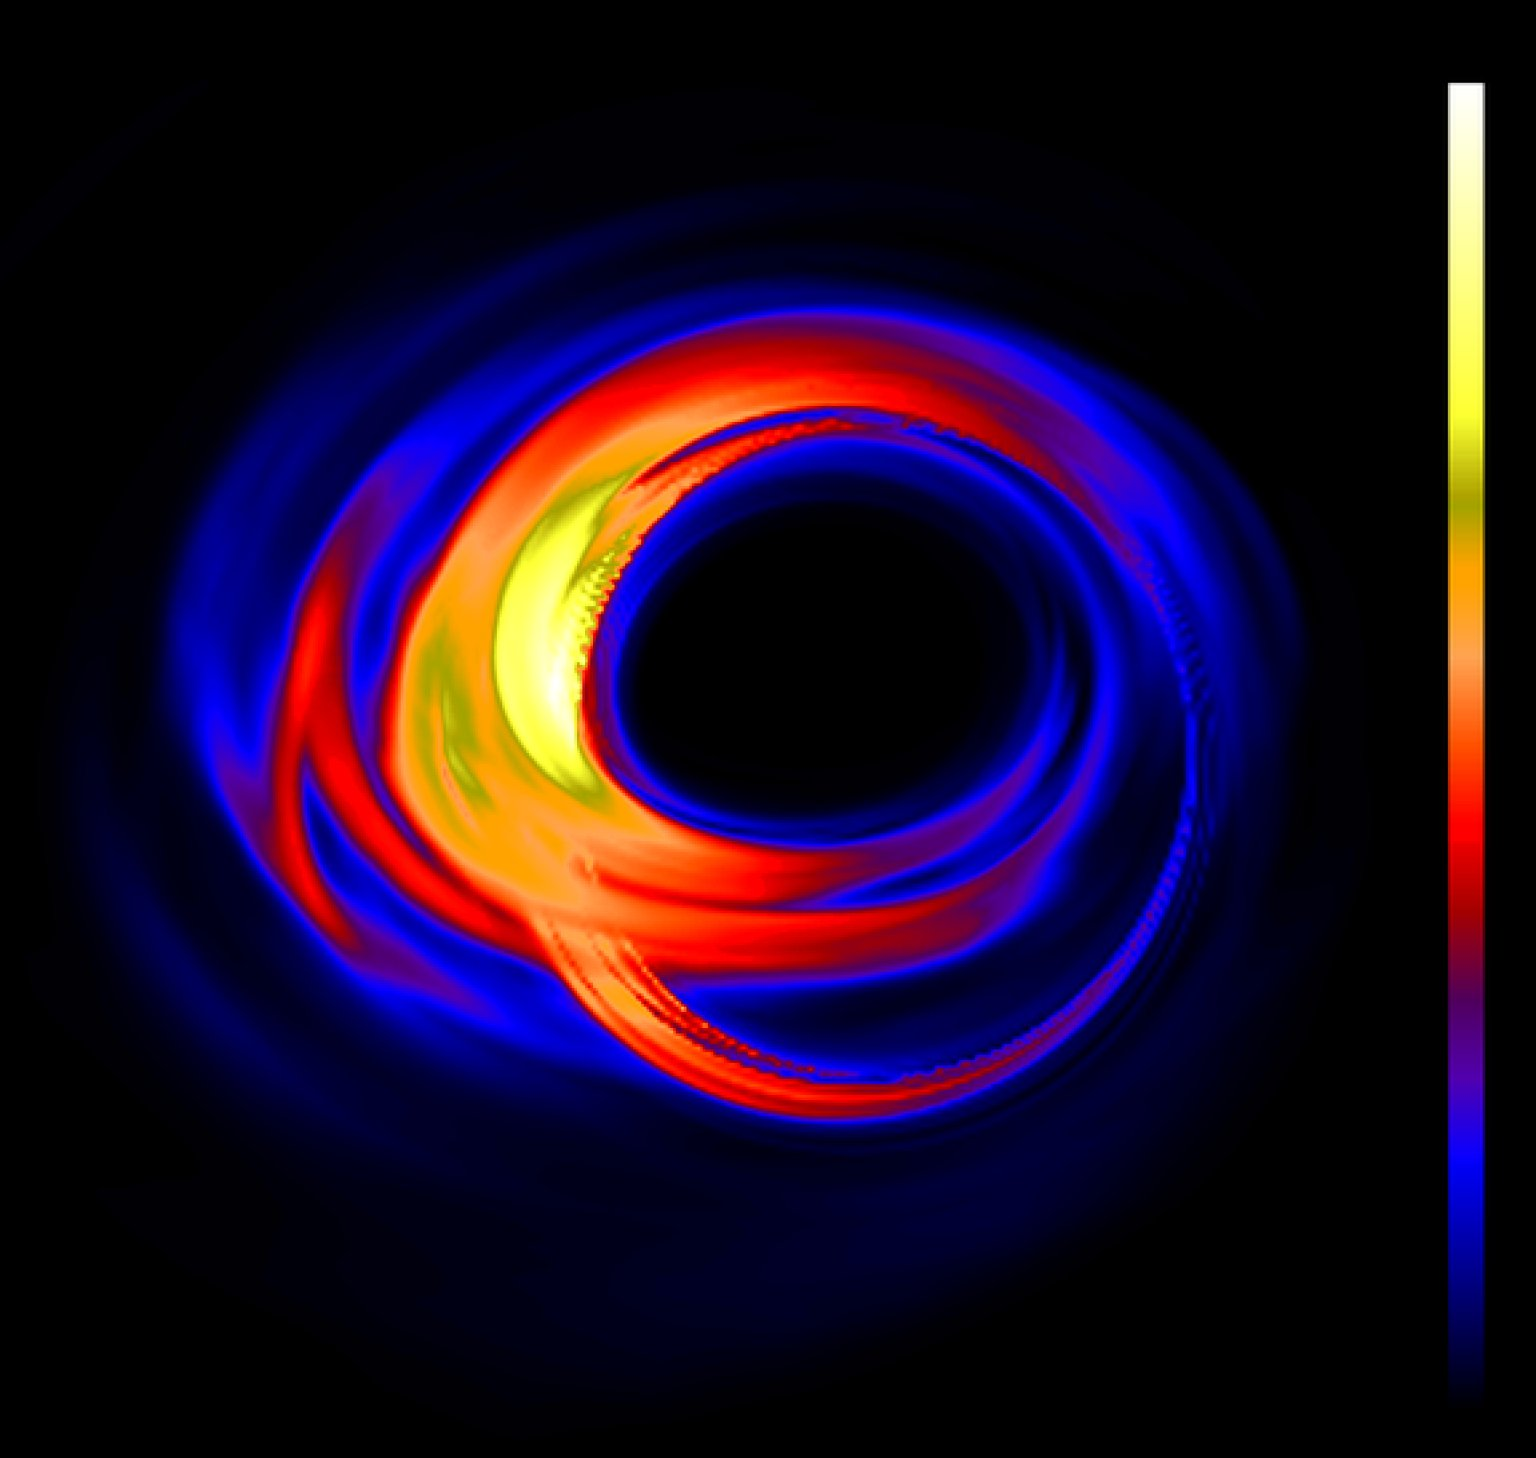 To 'See' Black Hole At Milky Way's Center, Scientists Push ...